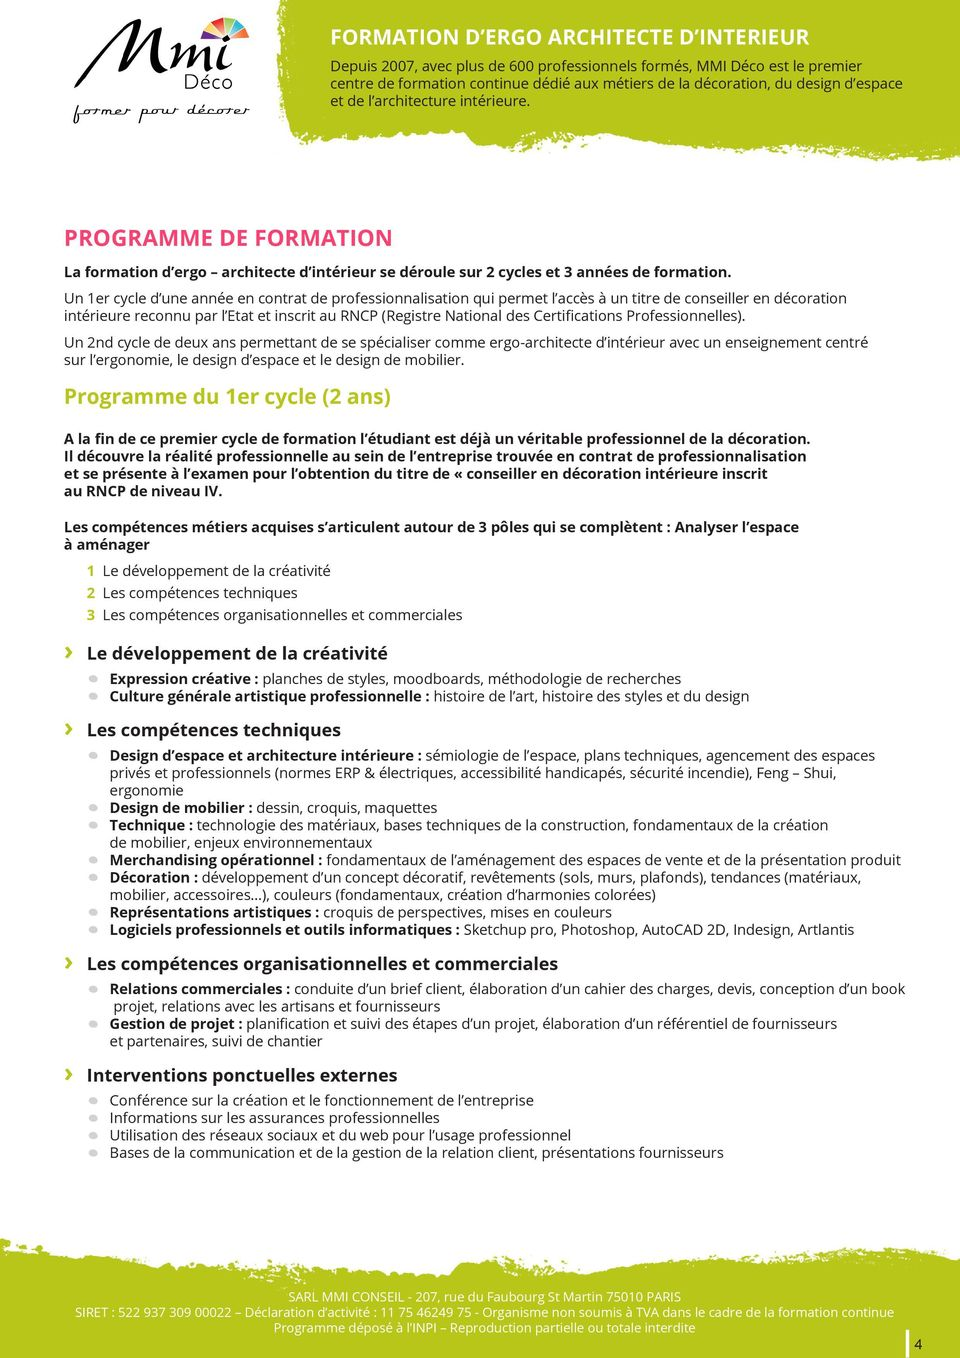 Devenir Architecte D'interieur à 40 Ans Formation D Ergo Architecte D Interieur Pdf